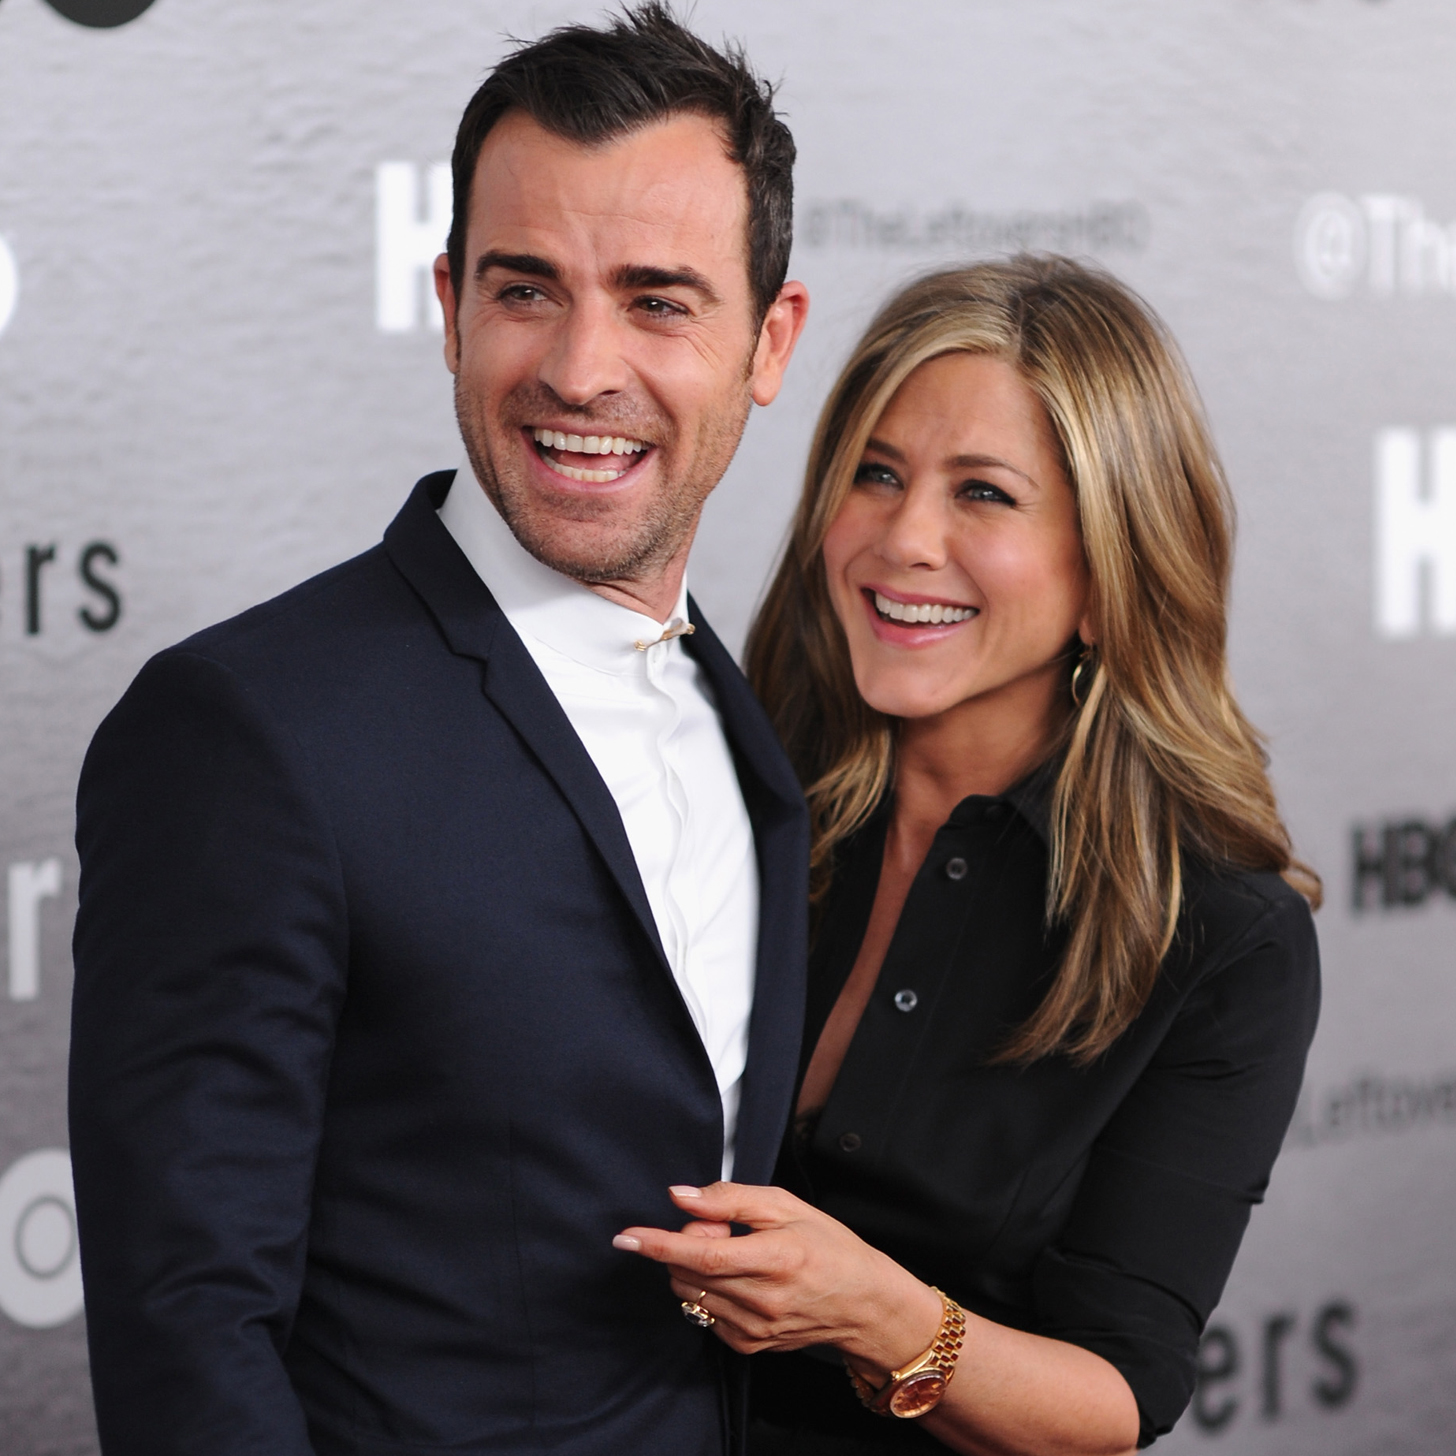 Jennifer Aniston & Justin Theroux Are Finally MARRIED!